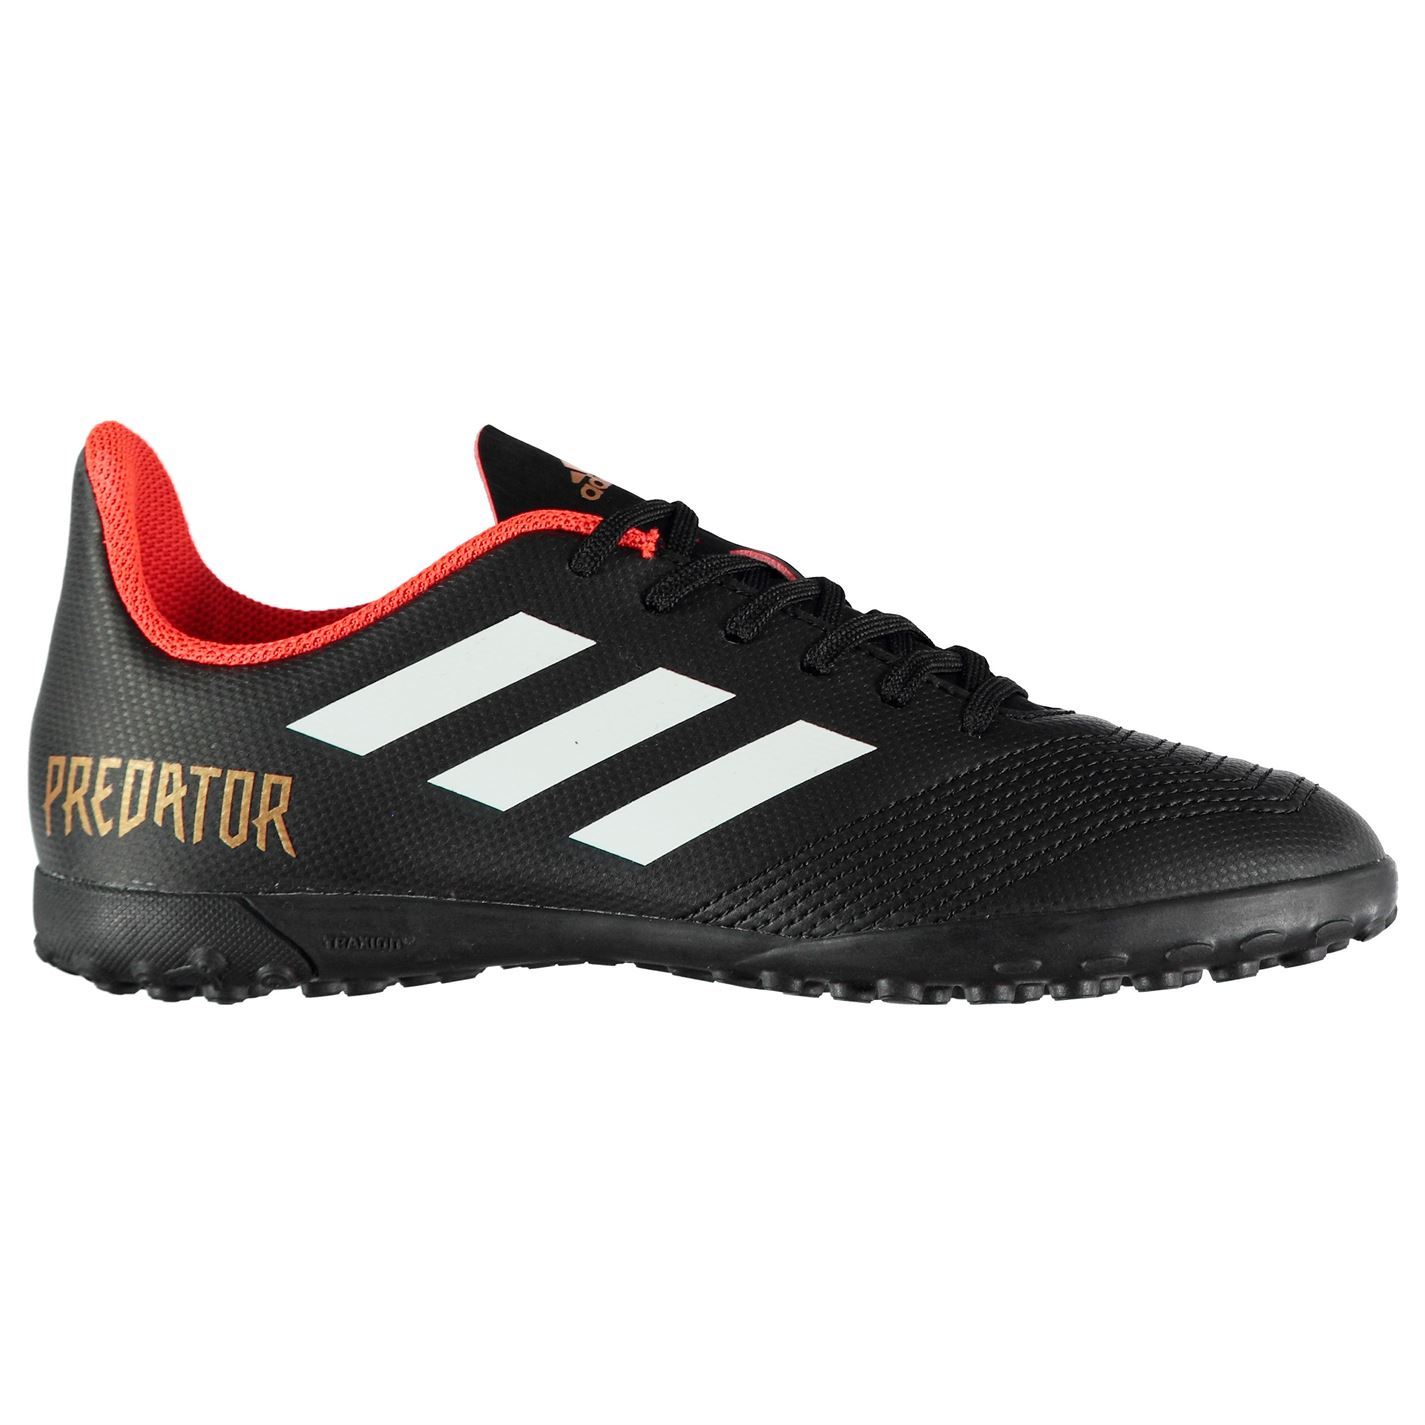 6e9564041a5c Children Boys adidas Predator 18 From Get The Label UK 2 ...